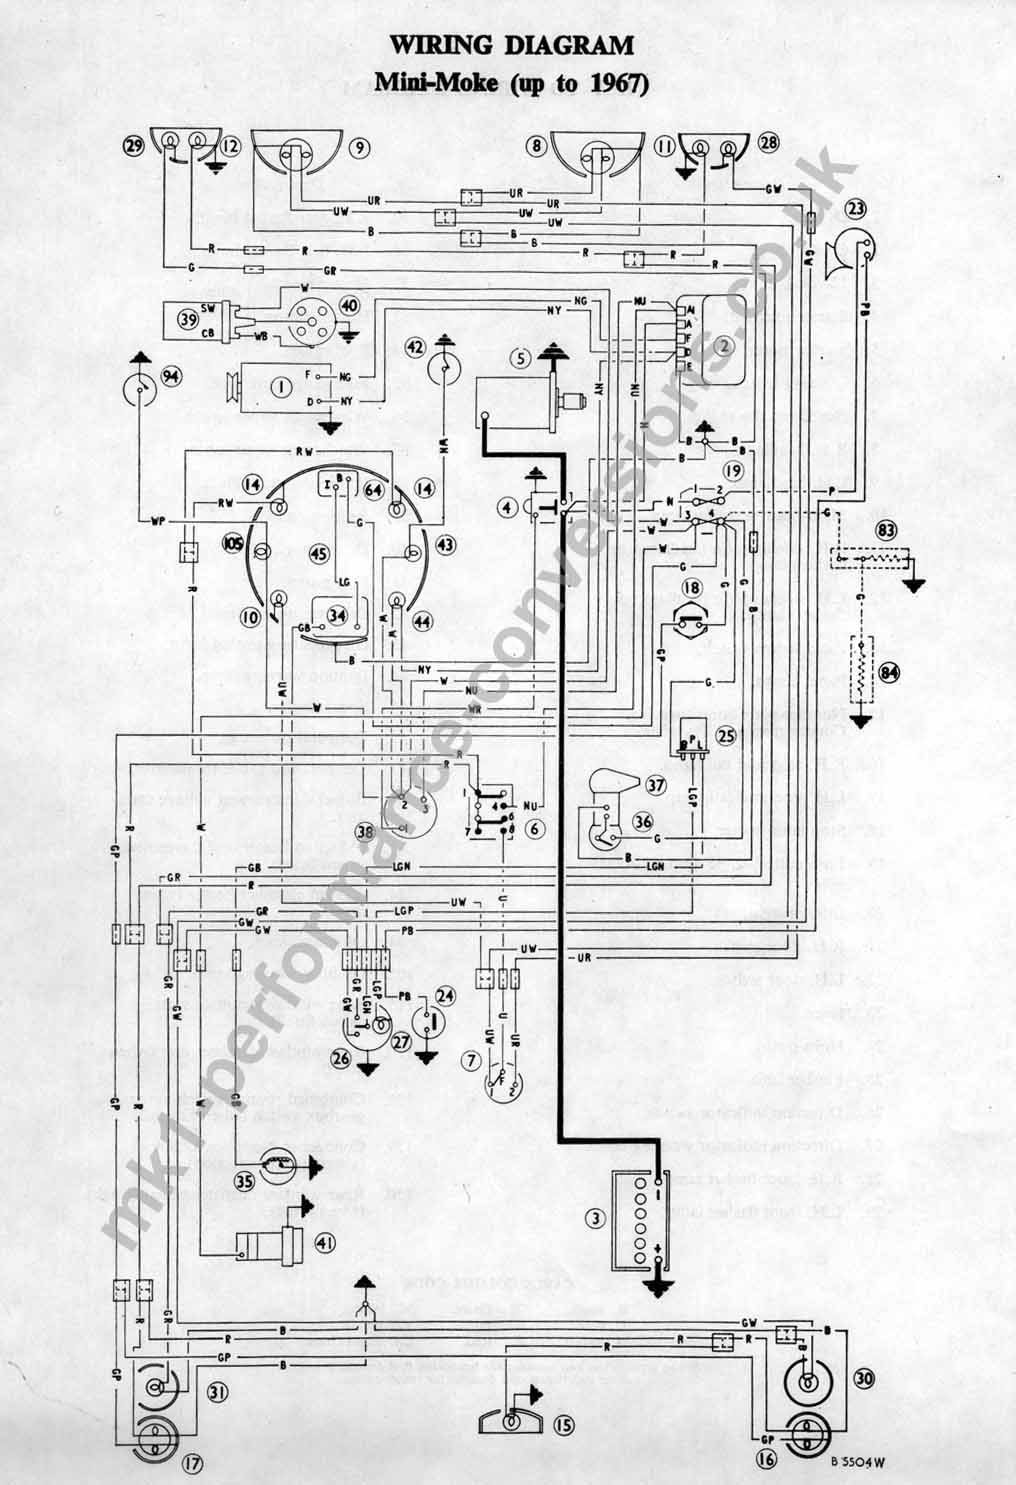 1967 chrysler 300 wiring diagram wiring diagram1967 chrysler 300 wiring diagram wiring library1967 chrysler 300 wiring diagram